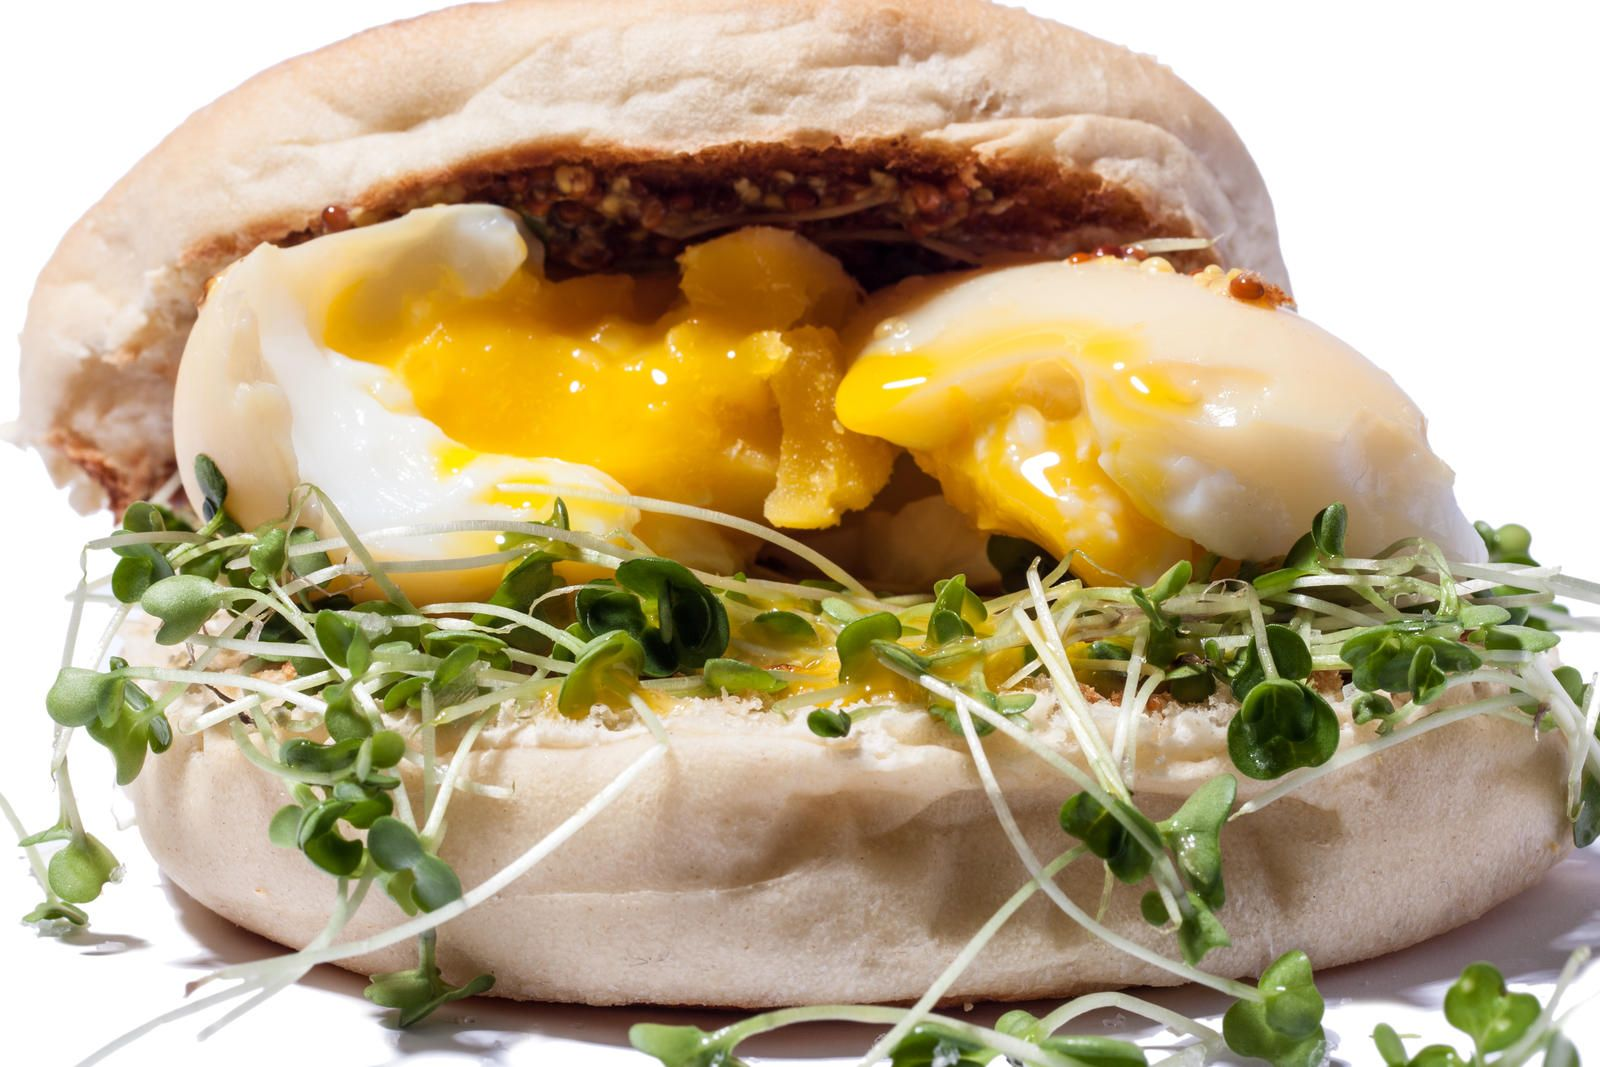 Smoked Egg Sandwich with Greens and Dijon Mustard Recipe